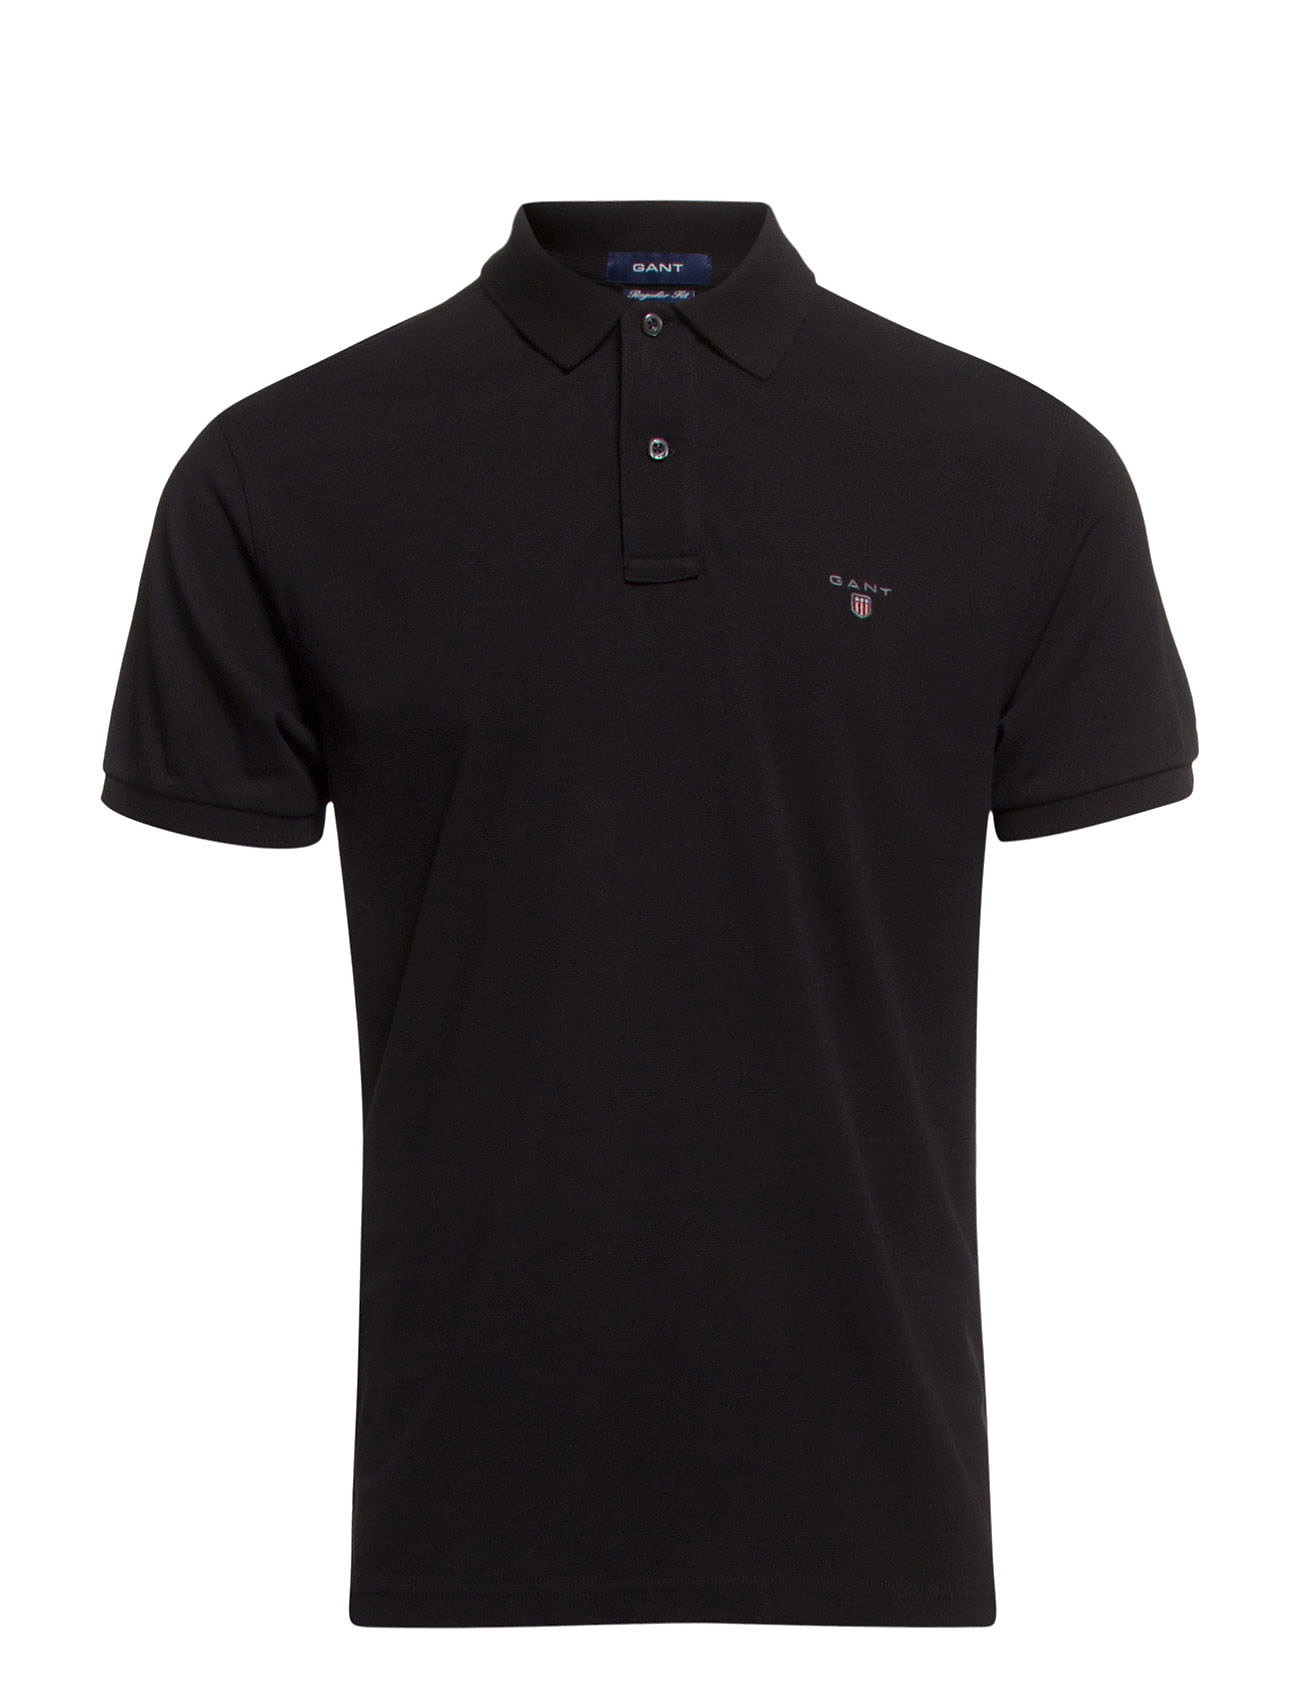 GANT THE ORIGINAL PIQUE SS RUGGER - BLACK